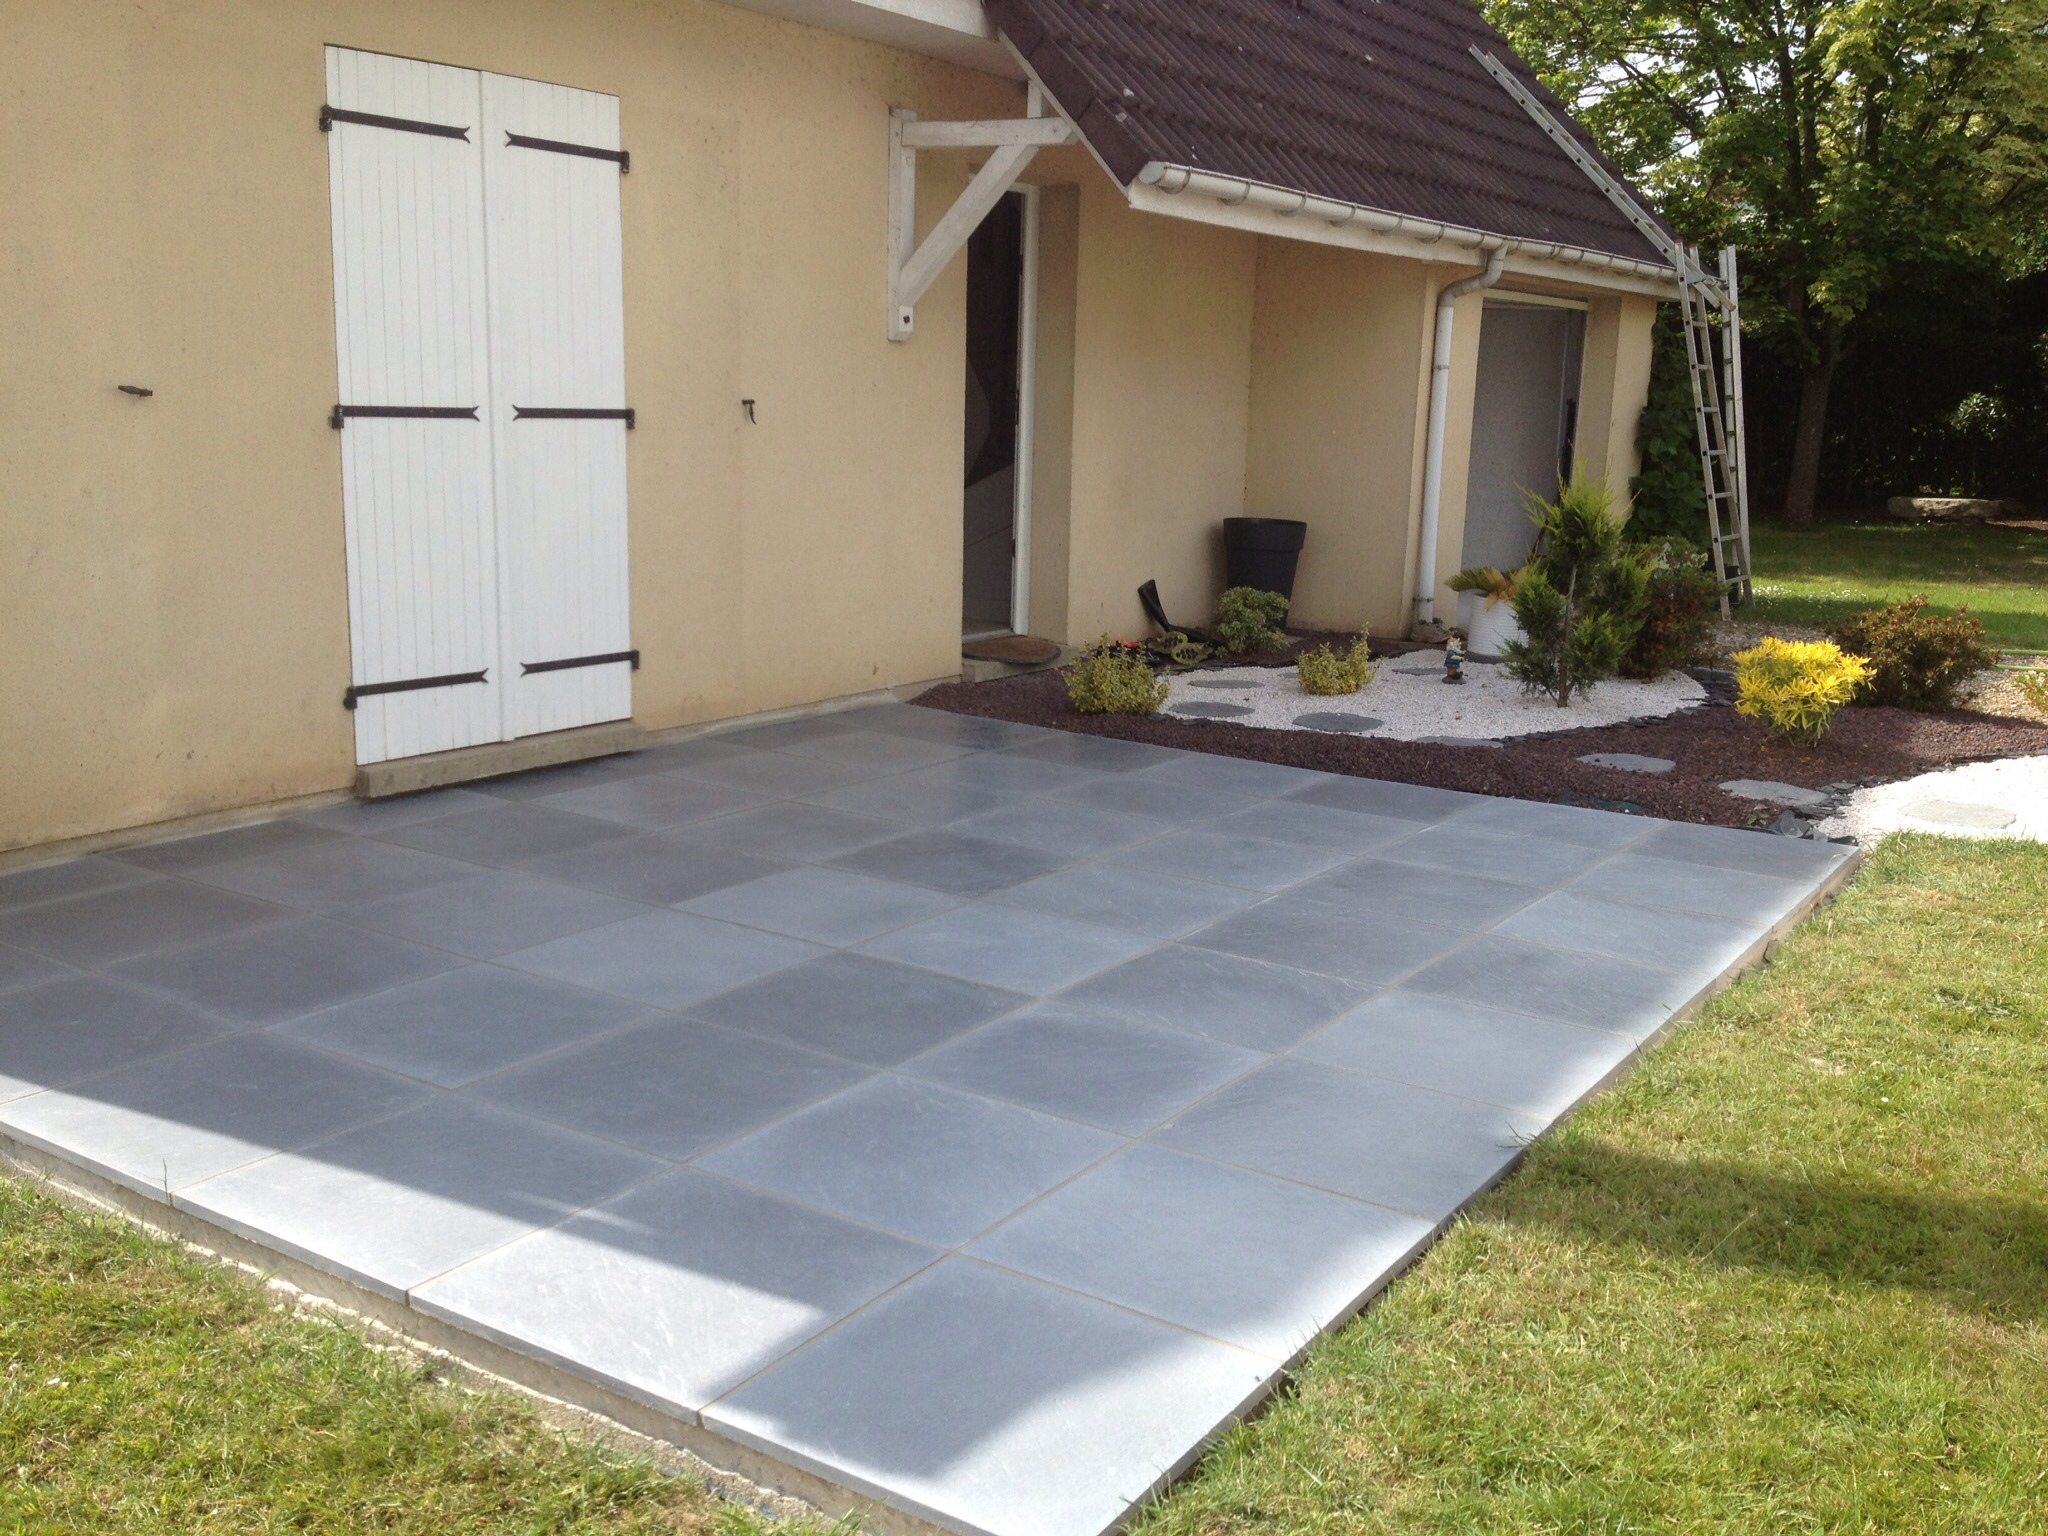 Terrasse bois sur plot beton for Plot pour dalle beton